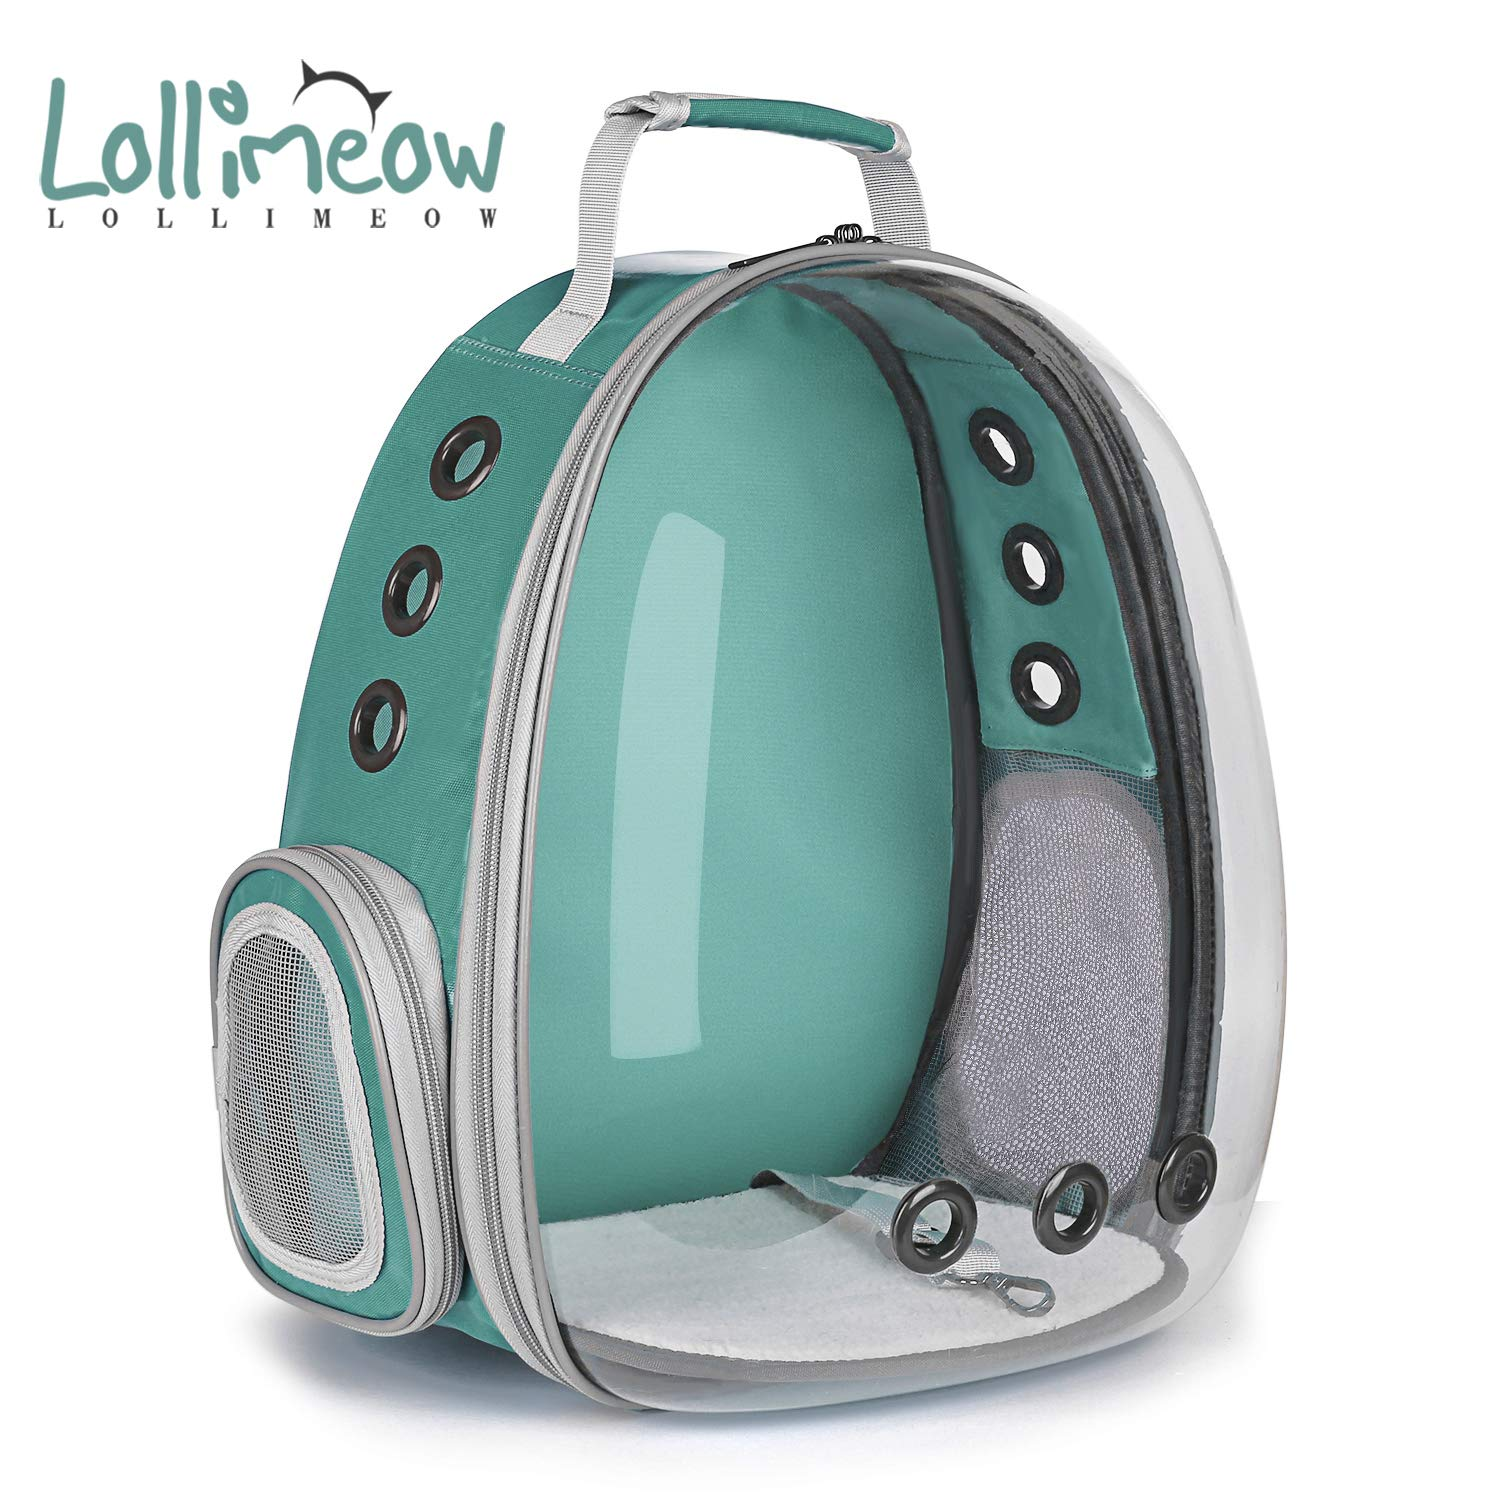 Green Keedo Pet Puppy Carrier Travel Bag Space Capsule Transparent Backpack Breathable 360° Sightseeing Airline Approved(Green)